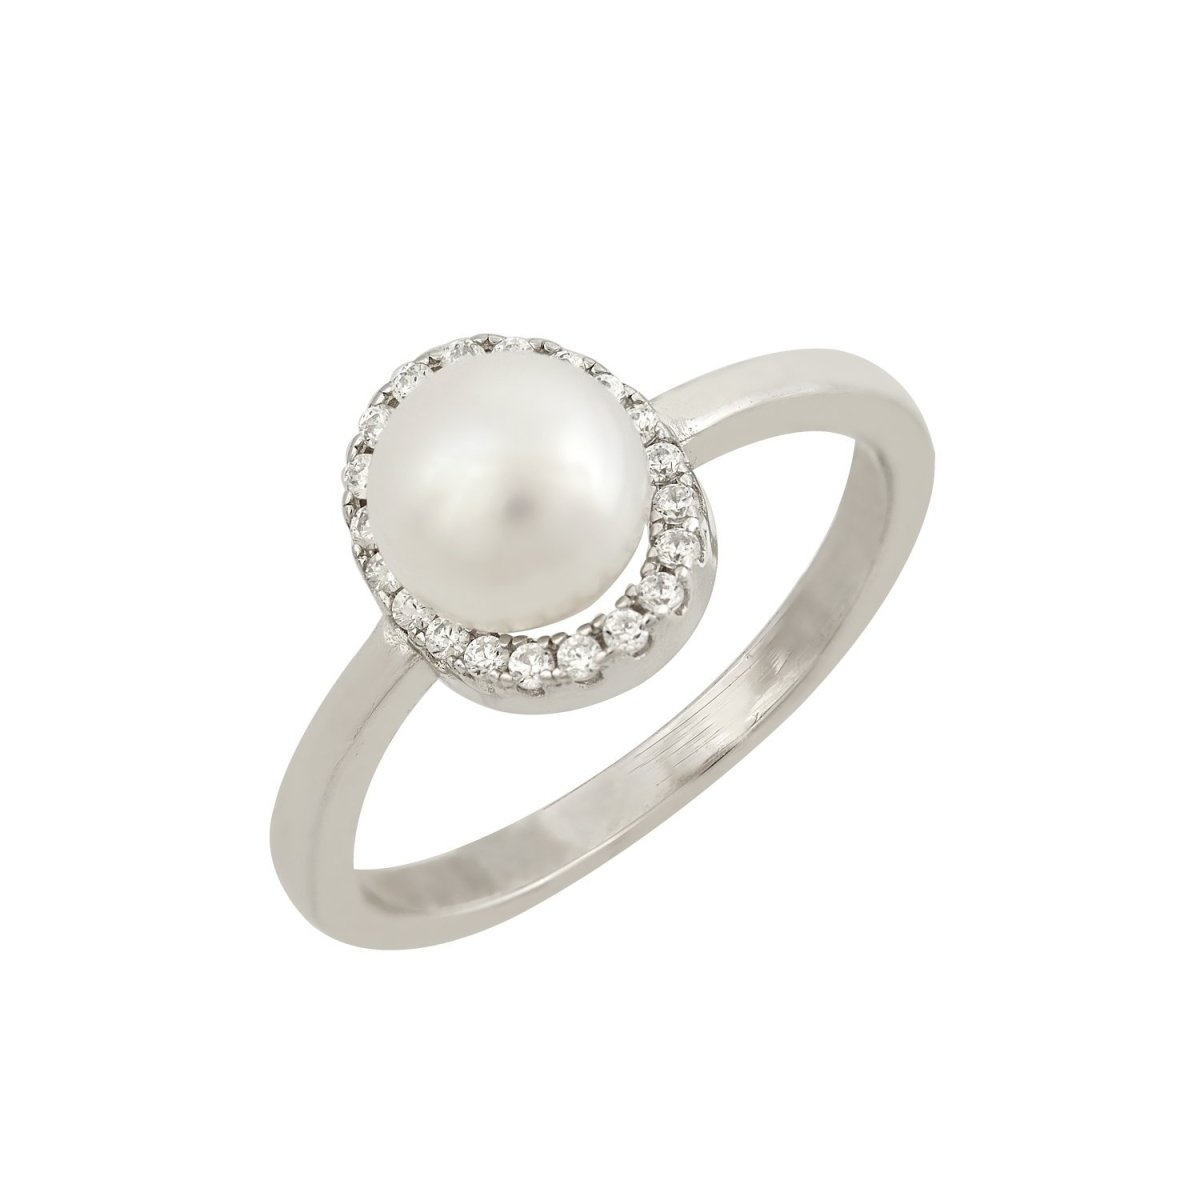 RS3465W Platinum Plating Ring - Goldy Jewelry Store